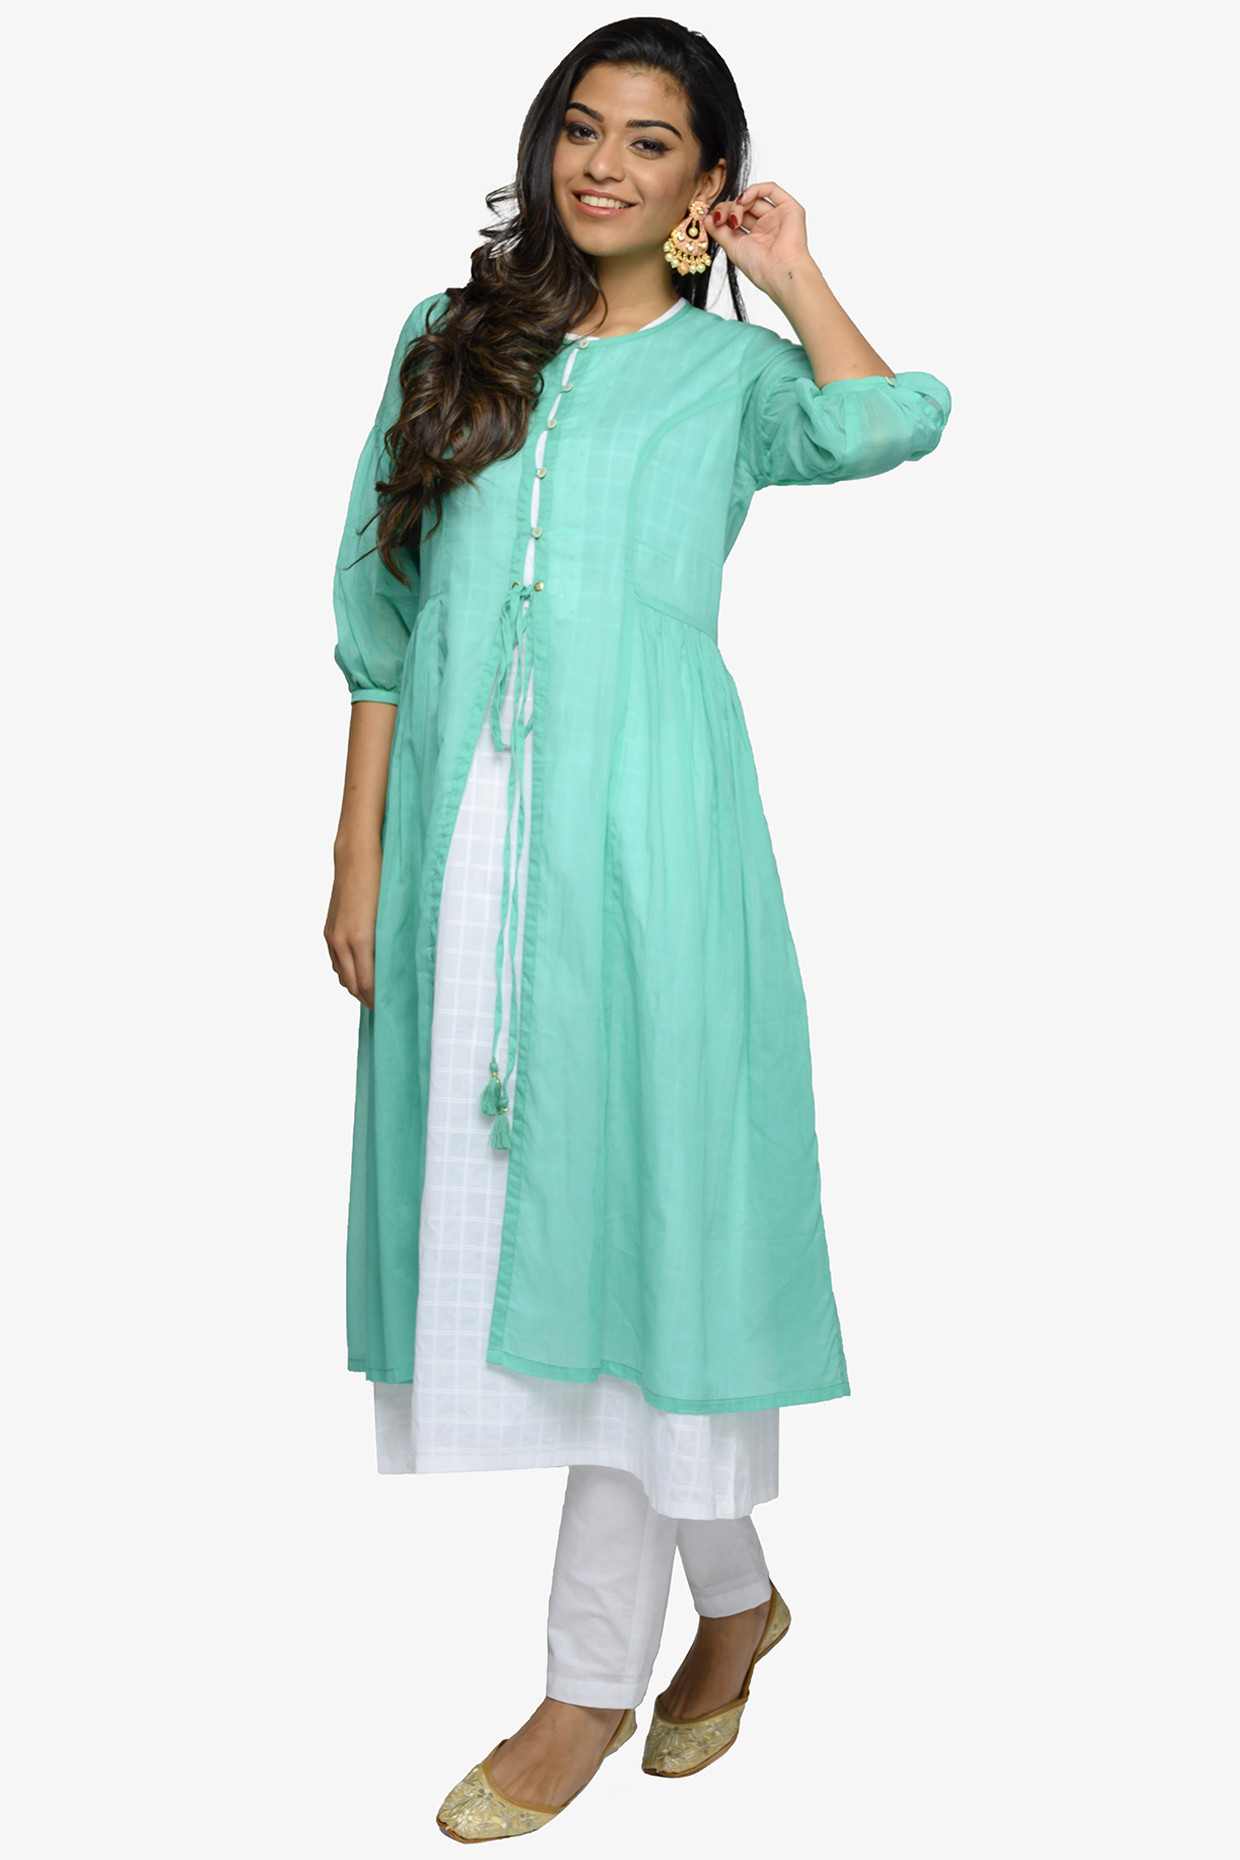 White A-line Cotton Kurta With Turquoise Jacket by House Of Idar